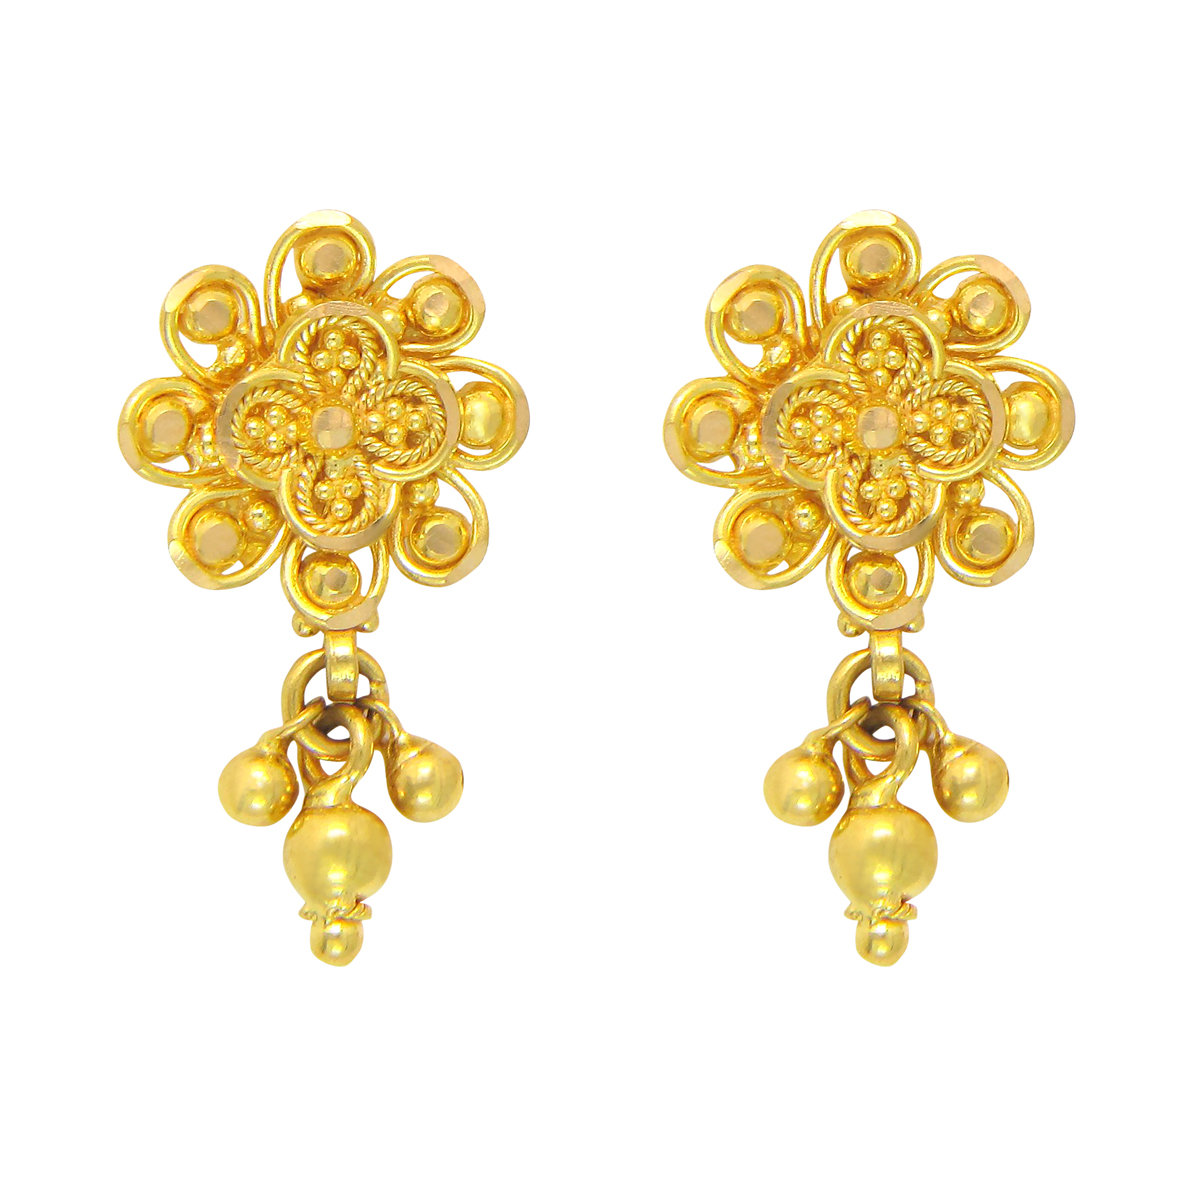 Popley 22Kt Gold Bandhan Earring - A48